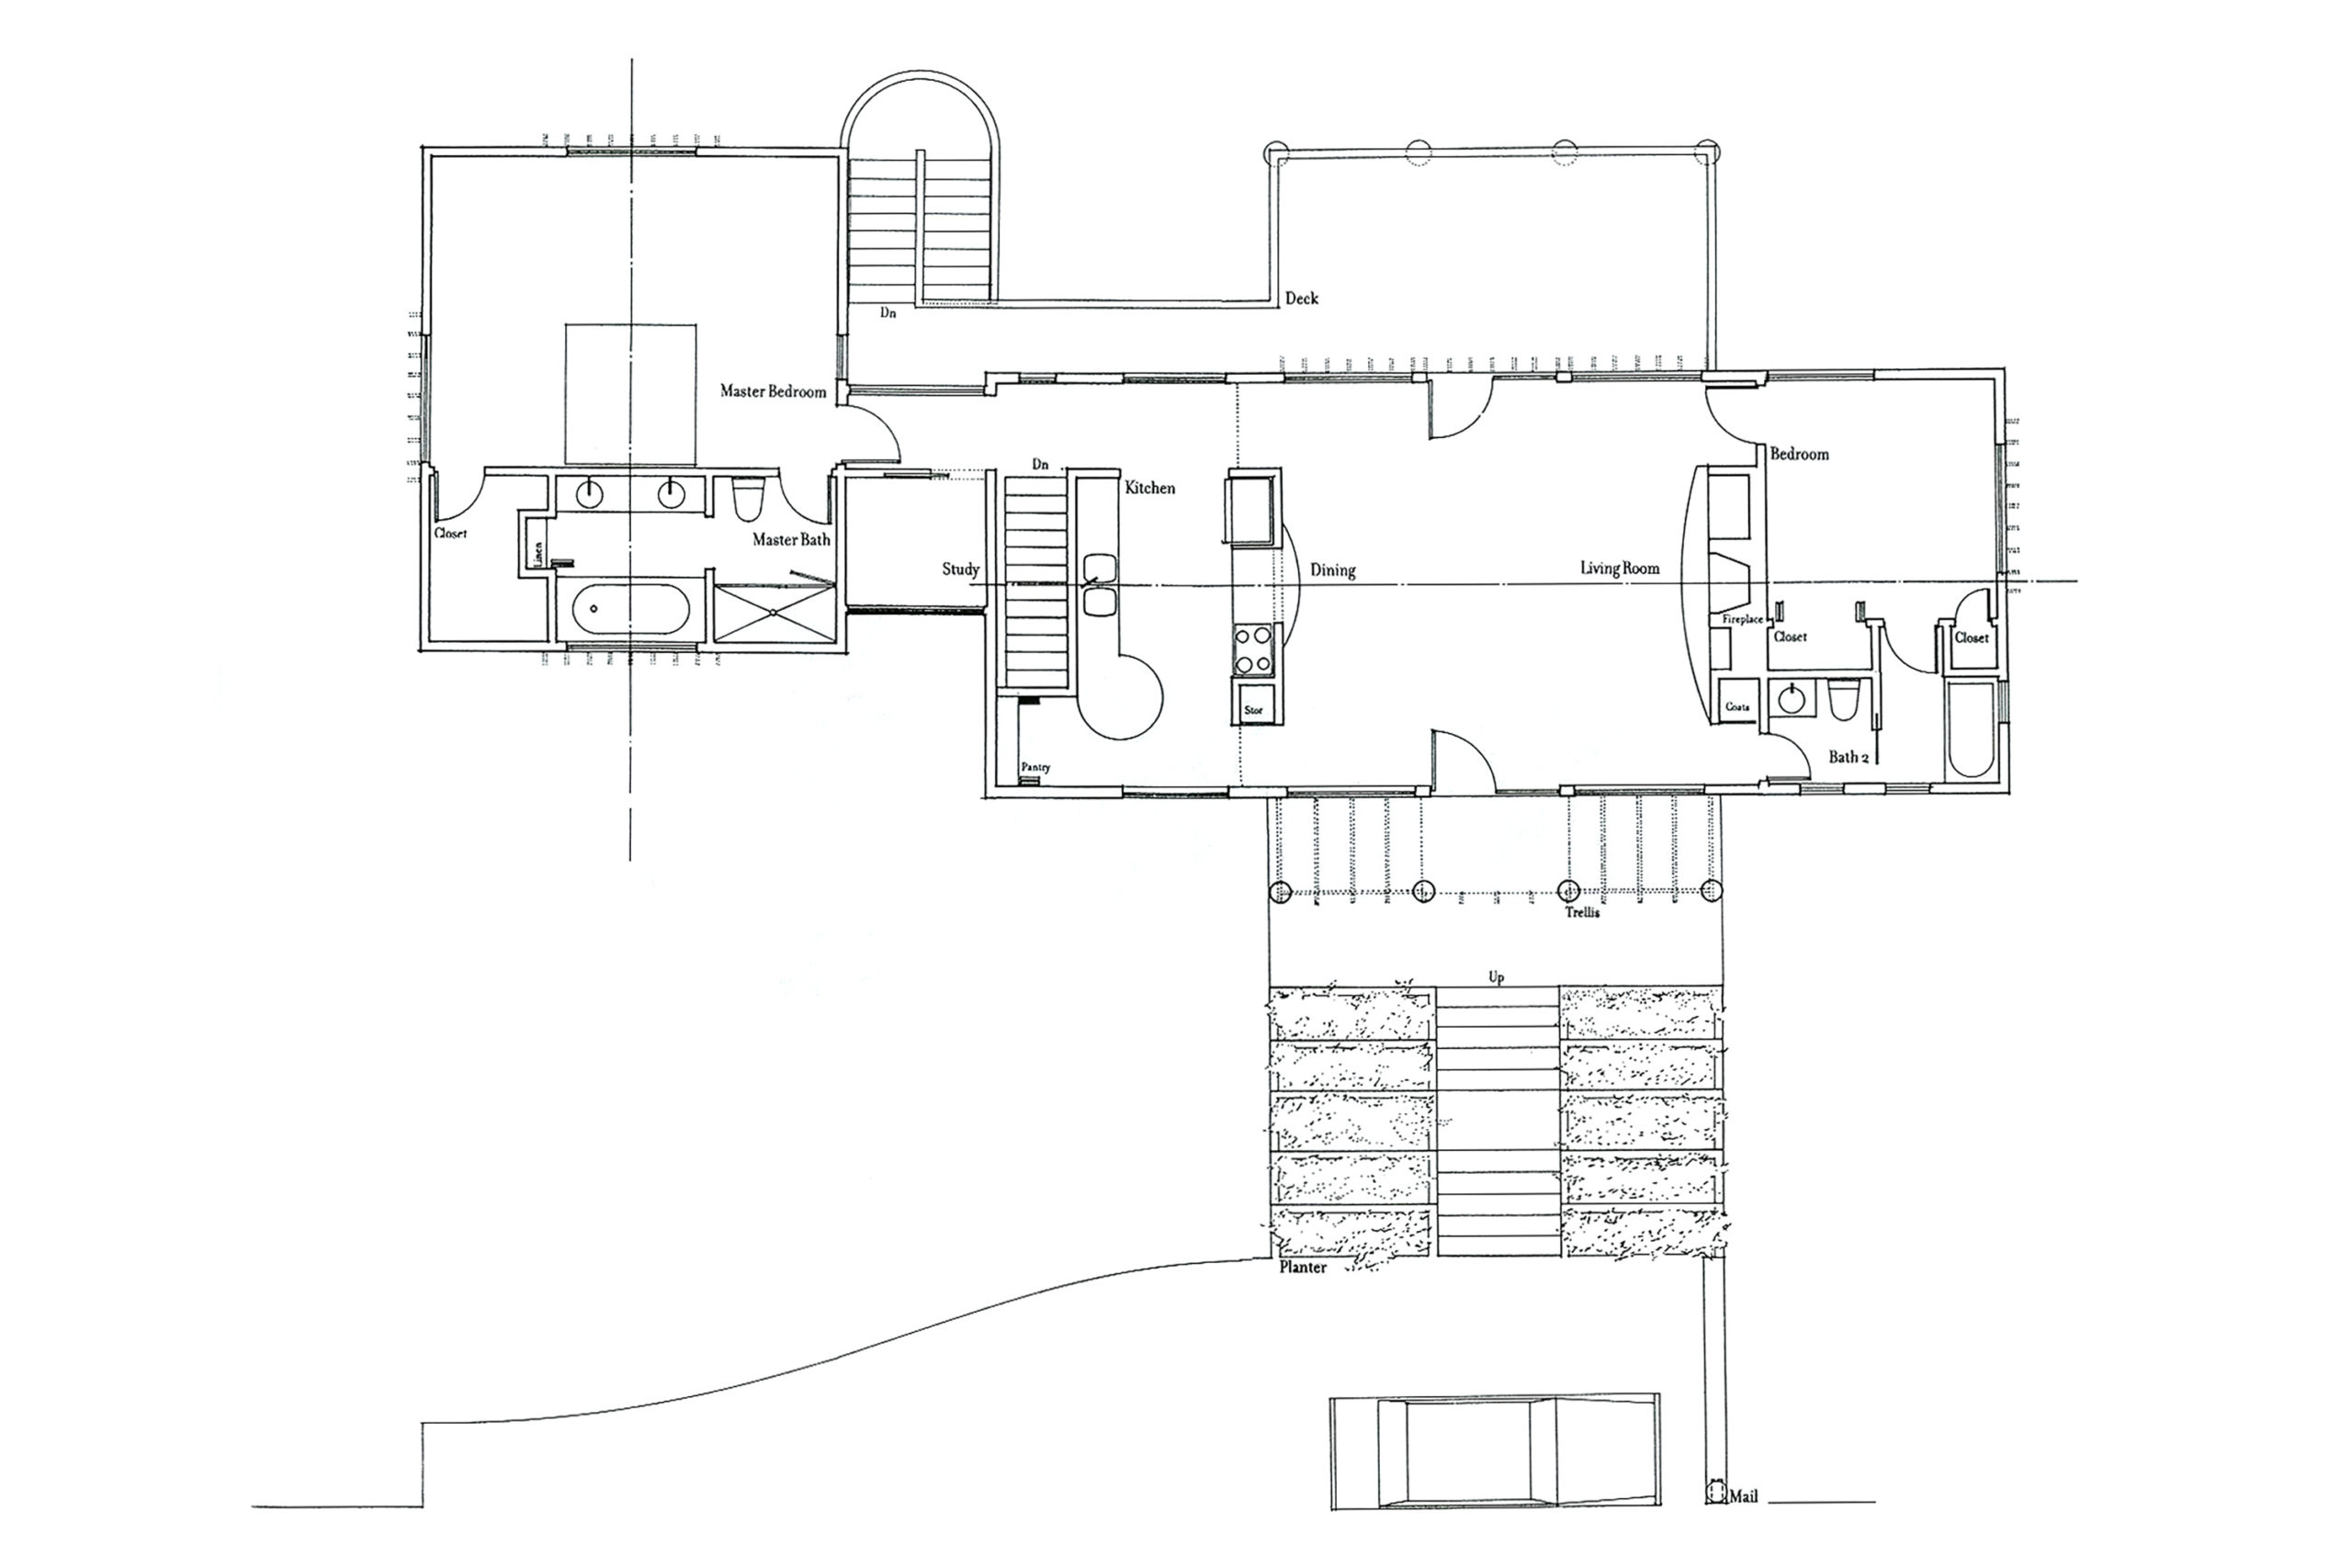 An architectural floor plan of the main level of this residence showing the master bedroom, study, kitchen, dining area, living room, and a second bedroom.